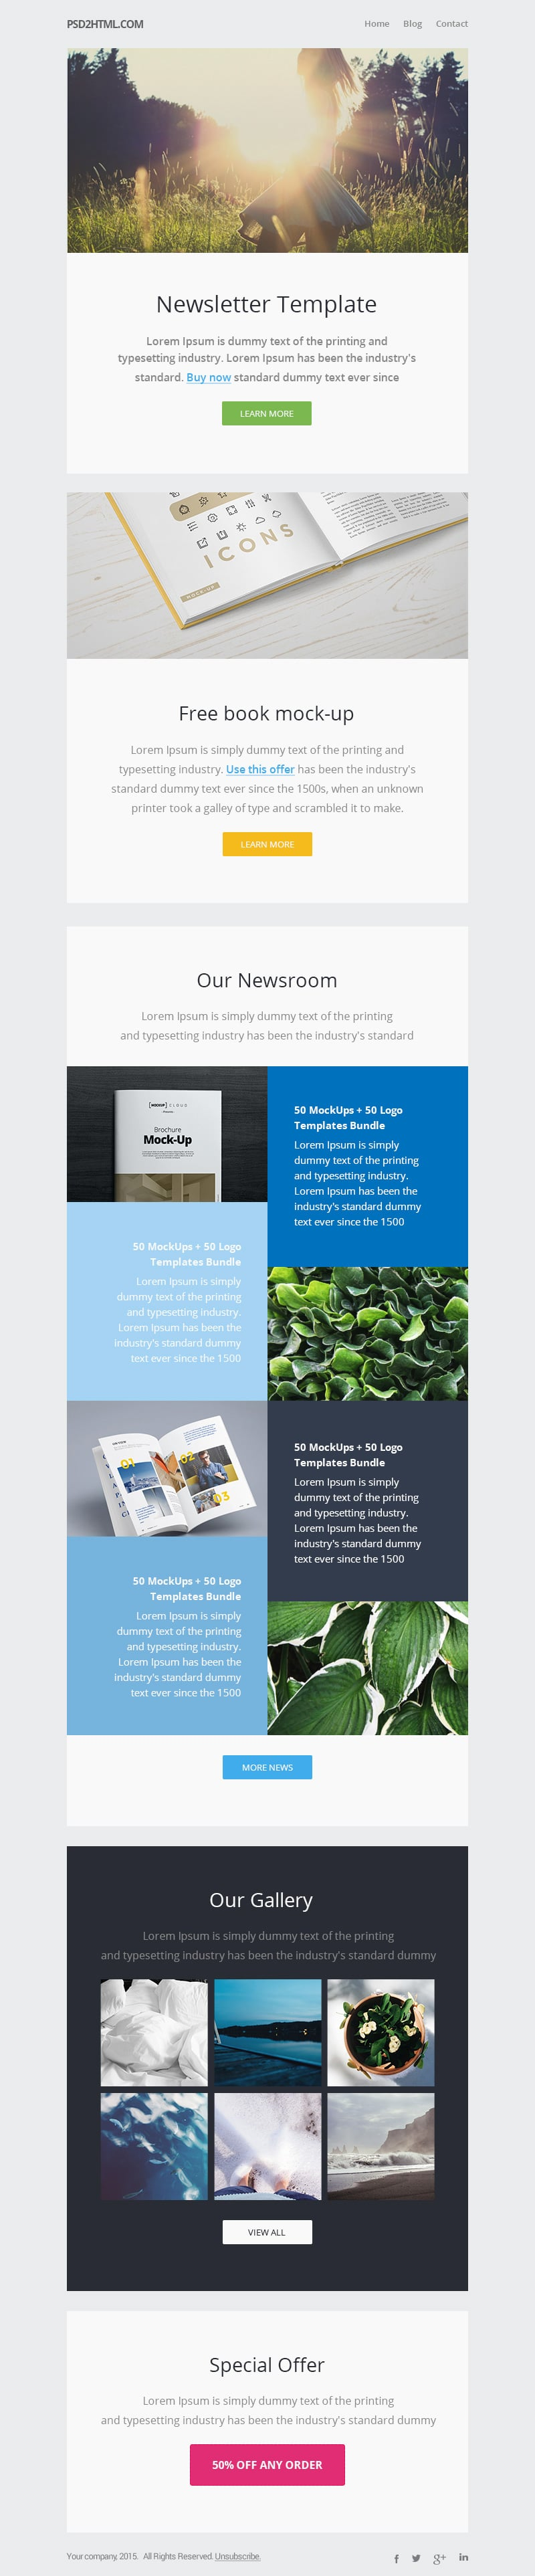 Free email newsletter templates psd css author for Newsletter layout templates free download